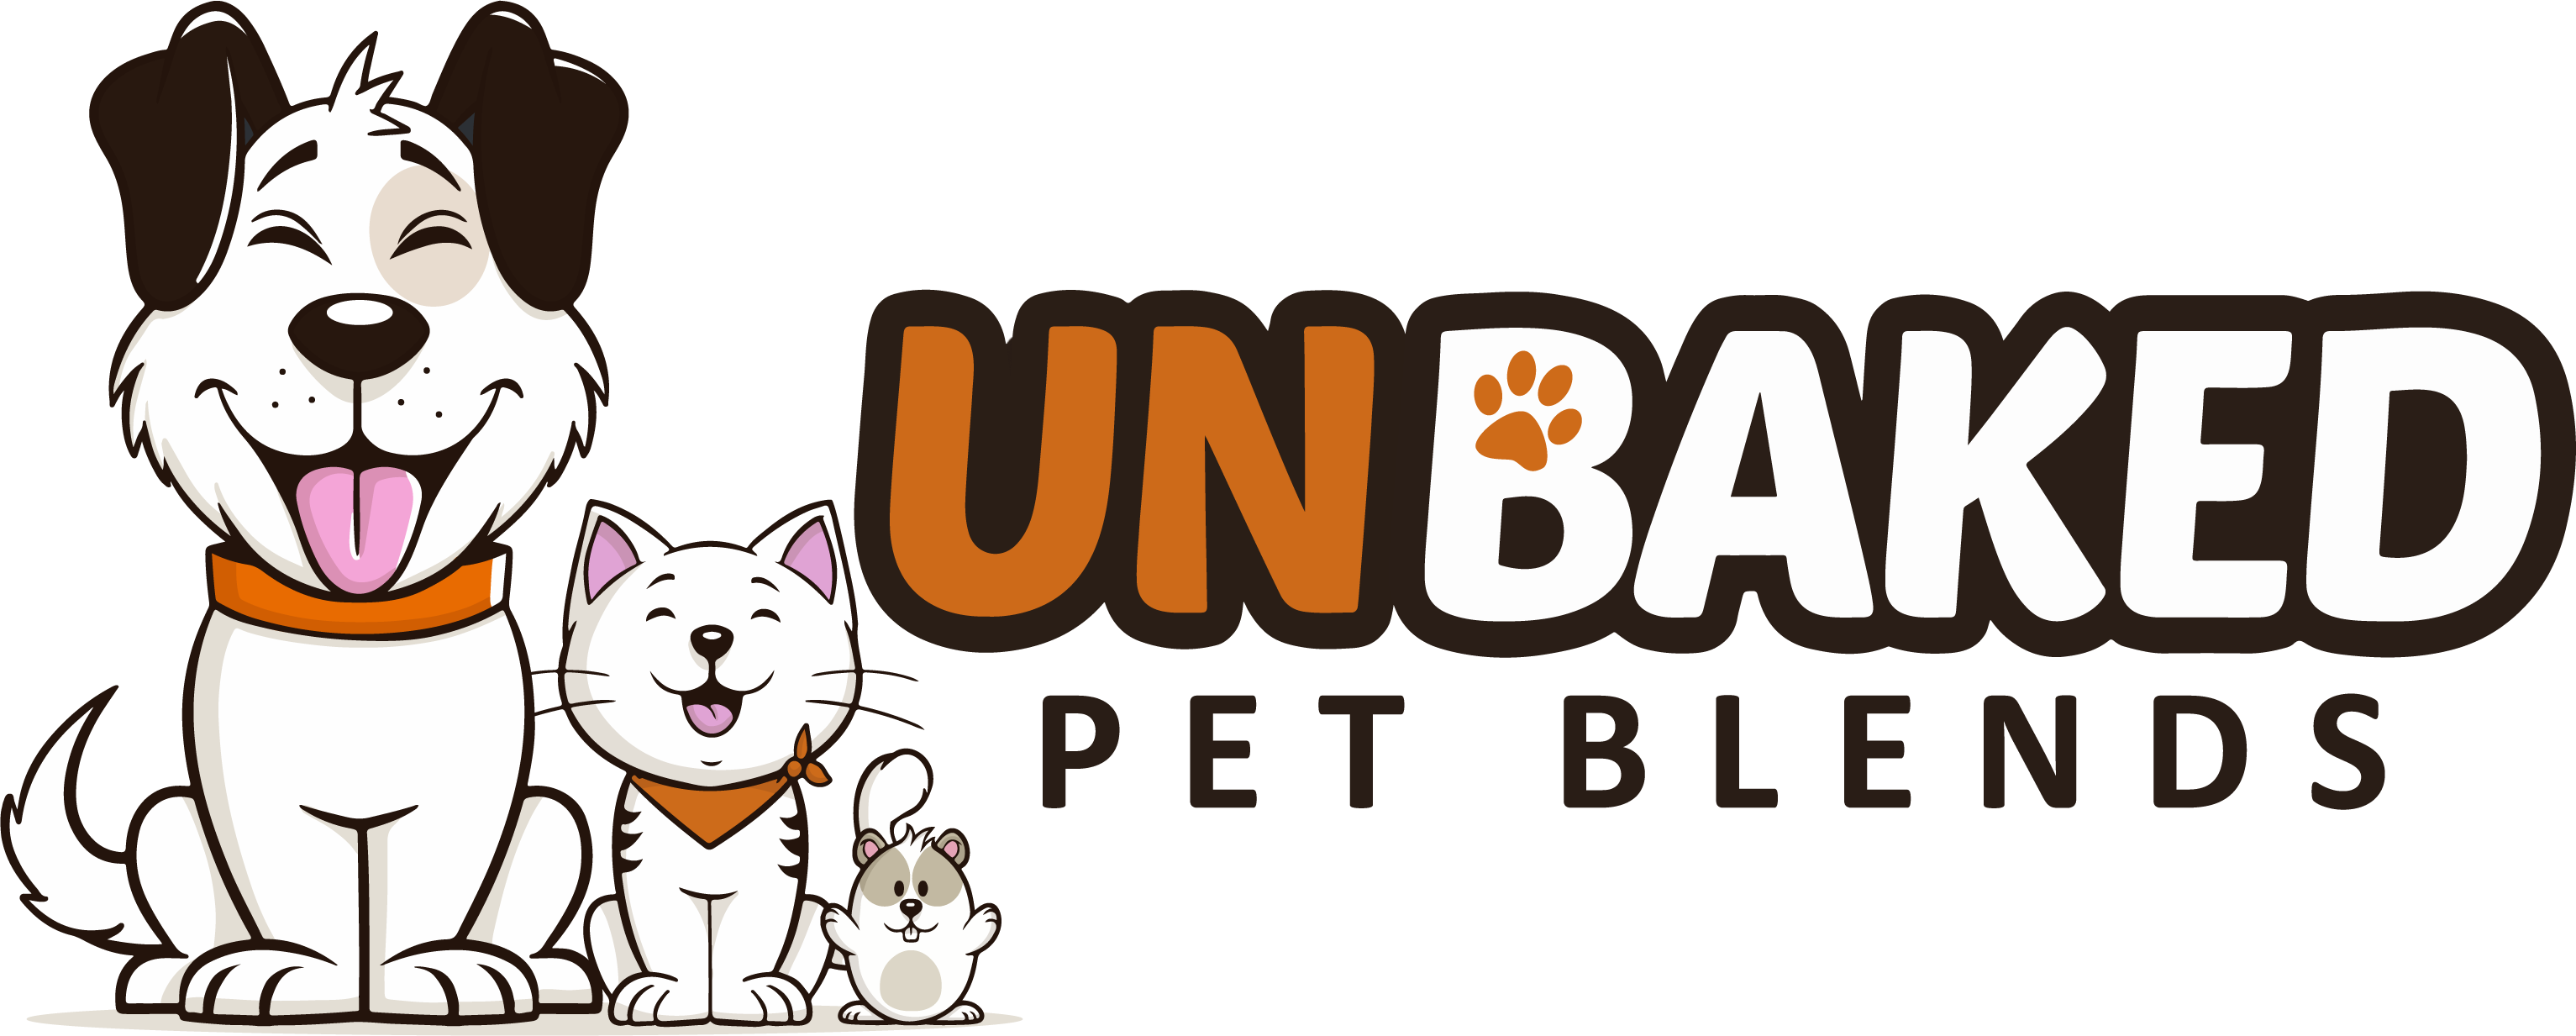 Unbaked Pet Blends